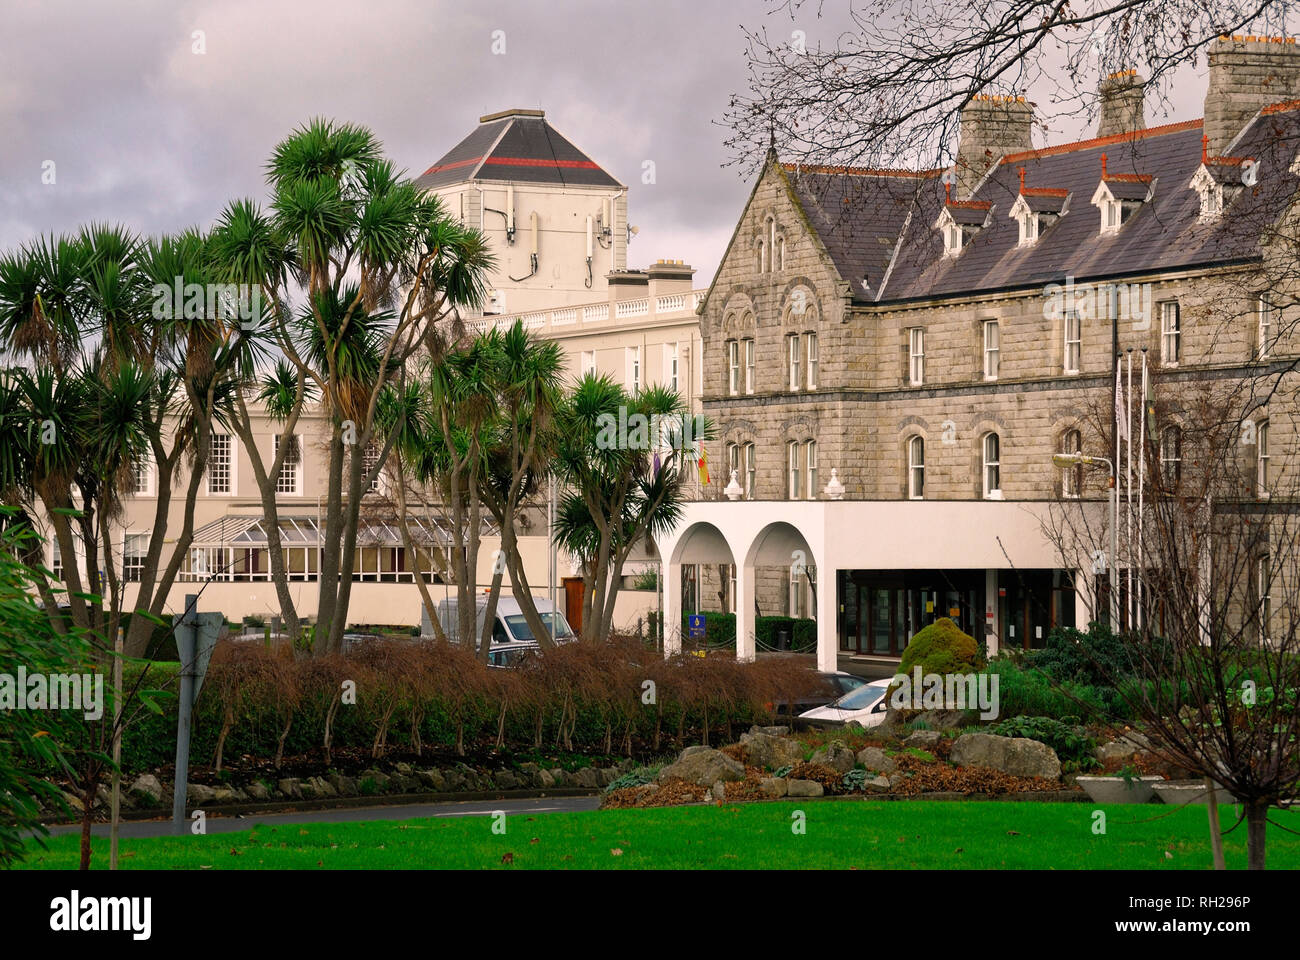 Saint John Of God Hospital,Dublin, Ireland. The mission is to bring healing, care and wholeness to people who have mental or psychological problems. - Stock Image